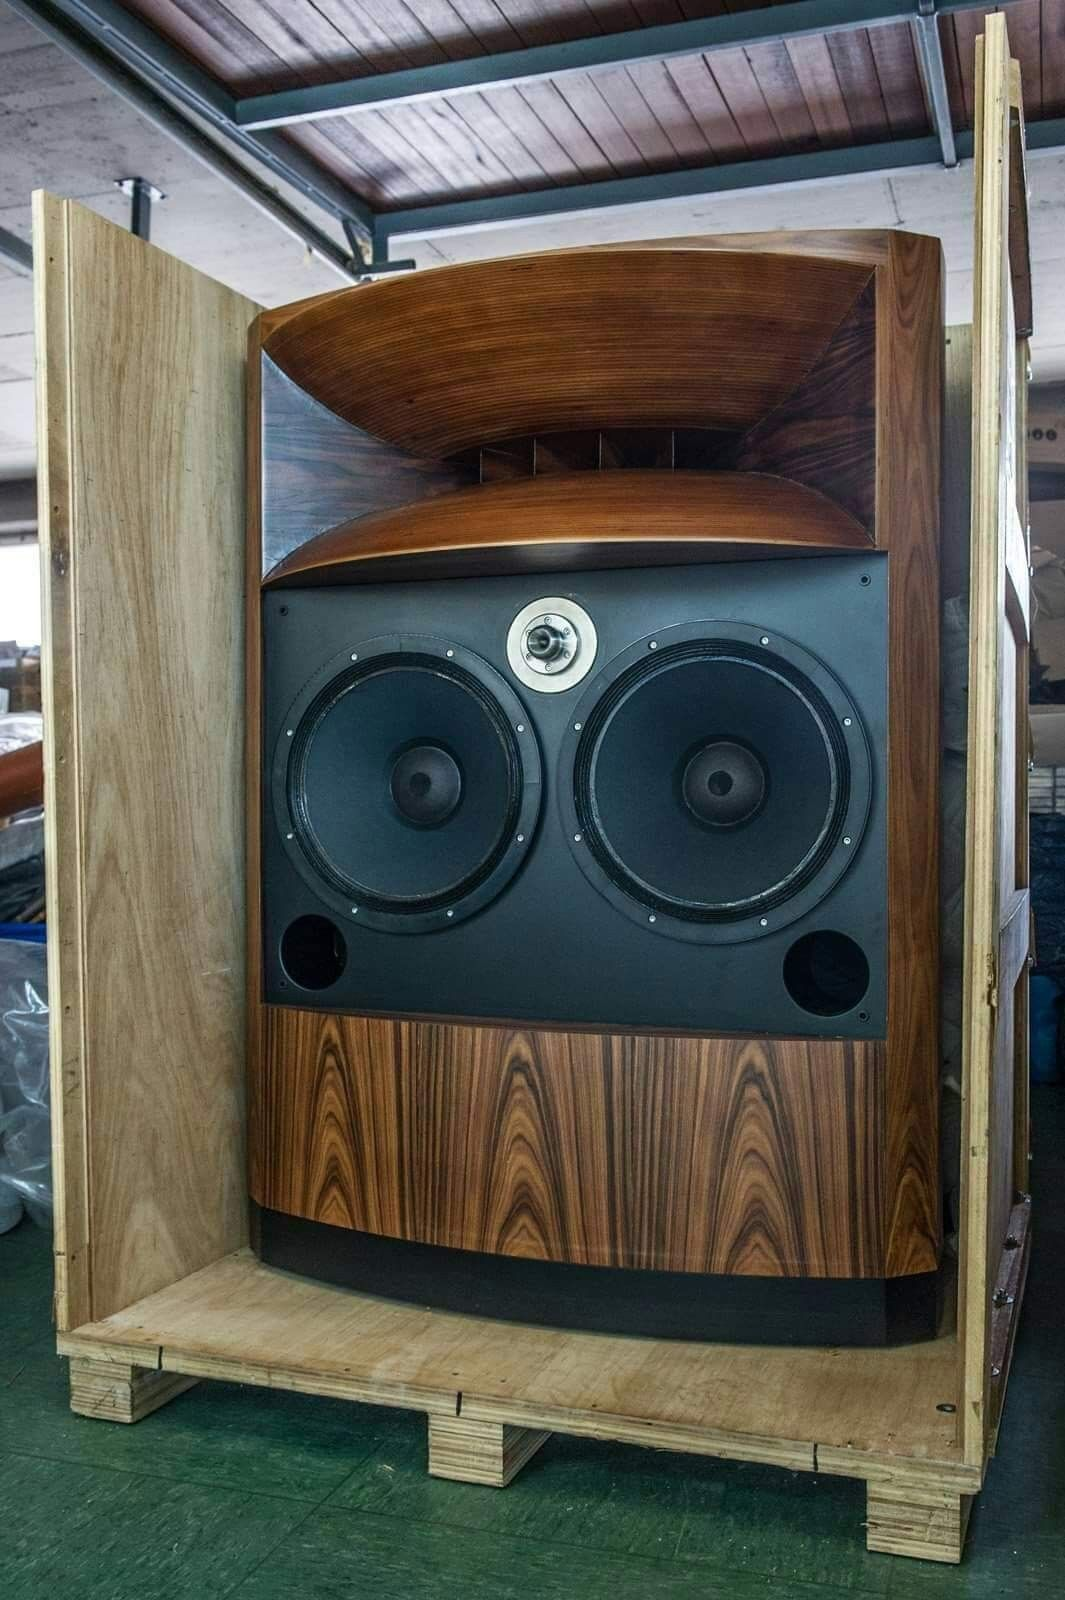 Pin by Kevin Chen on Loudspeaker in 2019 | Hifi audio, Pro